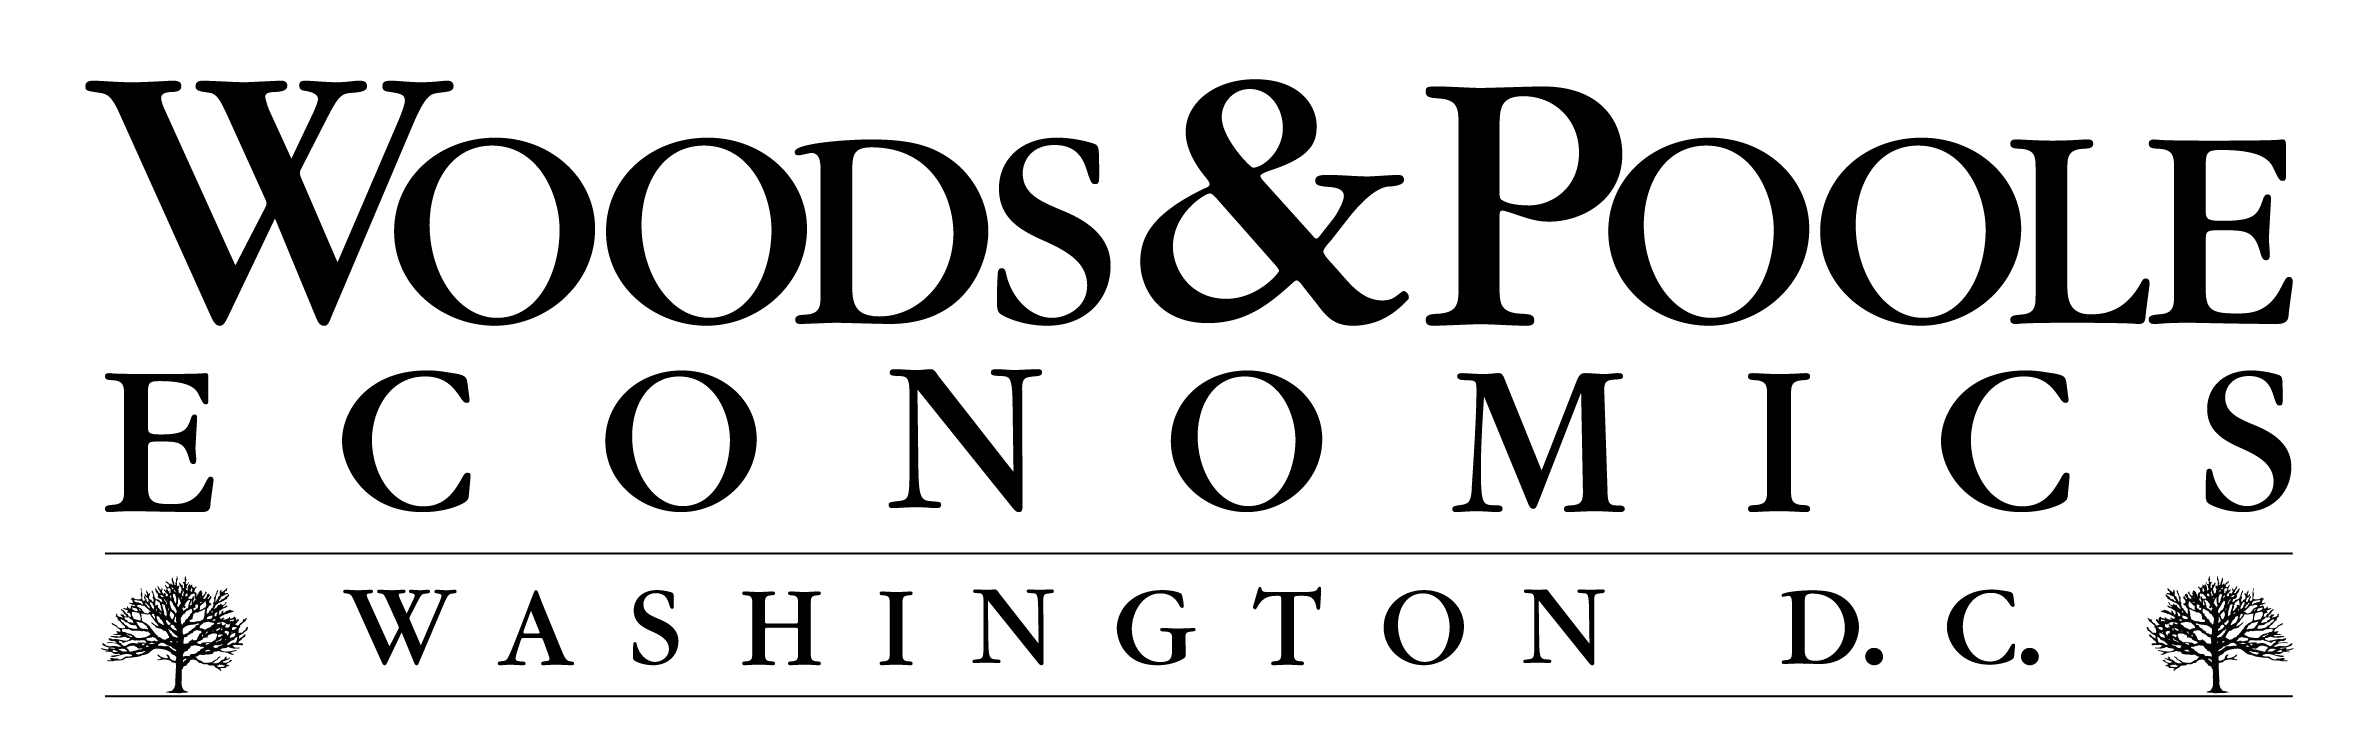 ST. LOUIS-ST. CHARLES-FARMINGTON MO-IL (FIPS 476) | Woods & Poole Economics, Inc